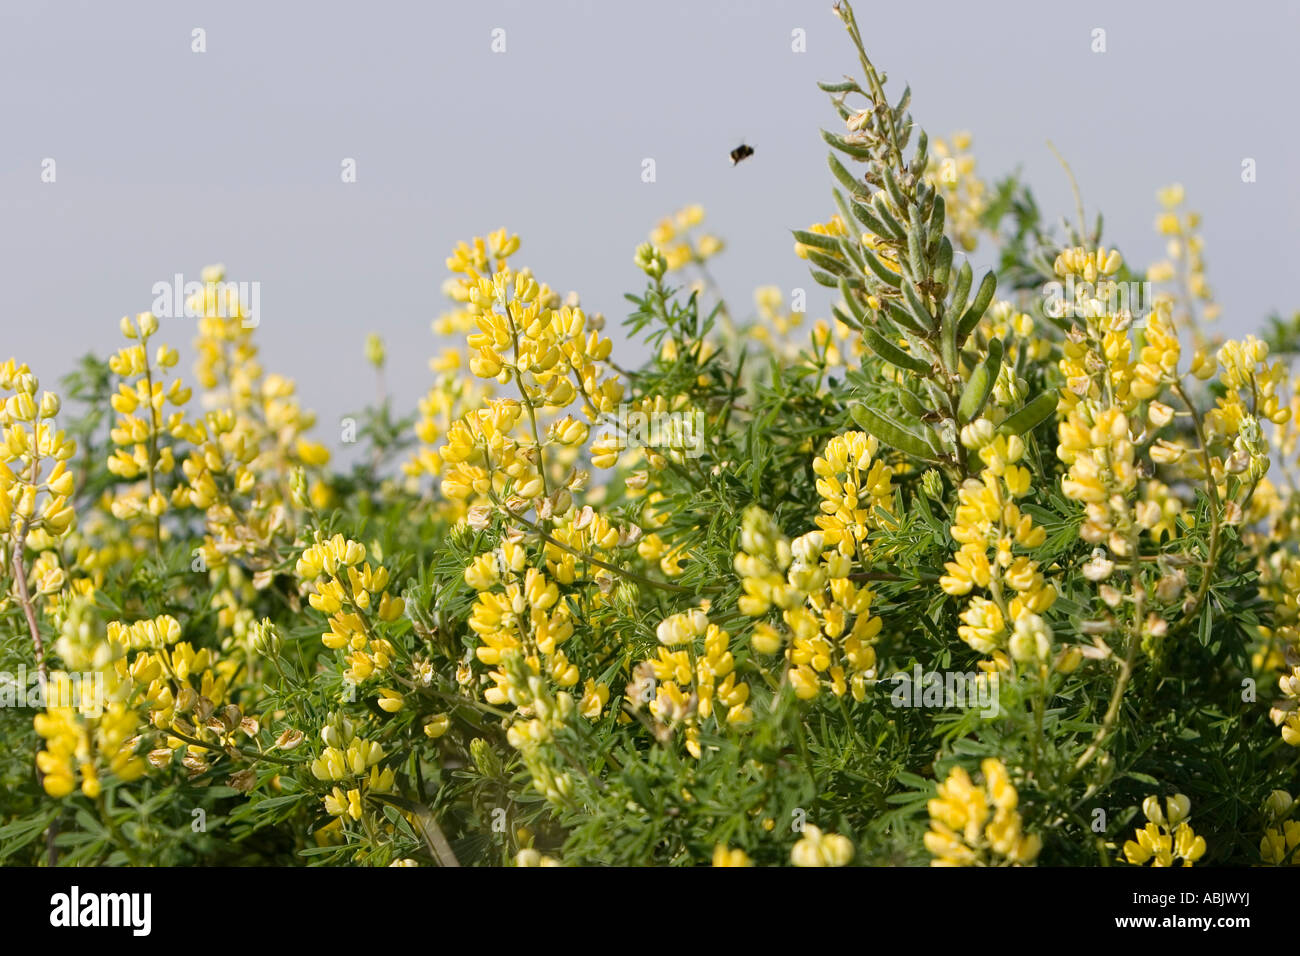 Petty whin genista anglica yellow flowered shrub stock photo petty whin genista anglica yellow flowered shrub dhlflorist Gallery